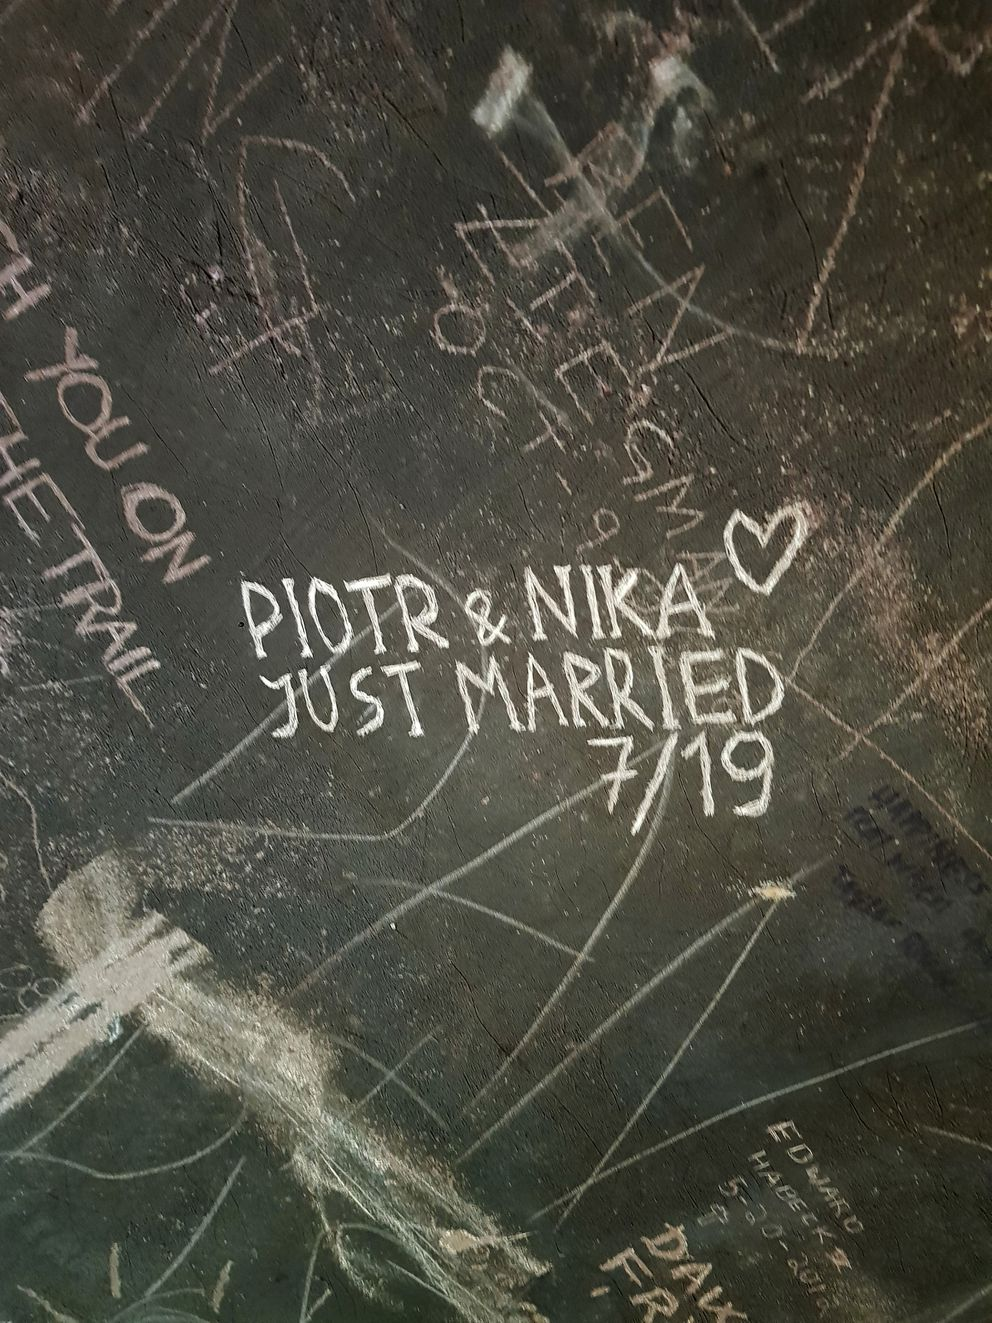 This undated photo provided by Piotr Markielau shows what he and his wife, Veranika Nikonova, scratched on an abandoned bus in the Alaska wilderness shortly before she died on July 25, 2019, following her struggle to cross the Teklanika River. Markielau said he frantically tried but failed to save his wife as she struggled to cross the river near a bus in the Alaska wilderness made famous by the movie 'Into the Wild. ' (Piotr Markielau via AP)